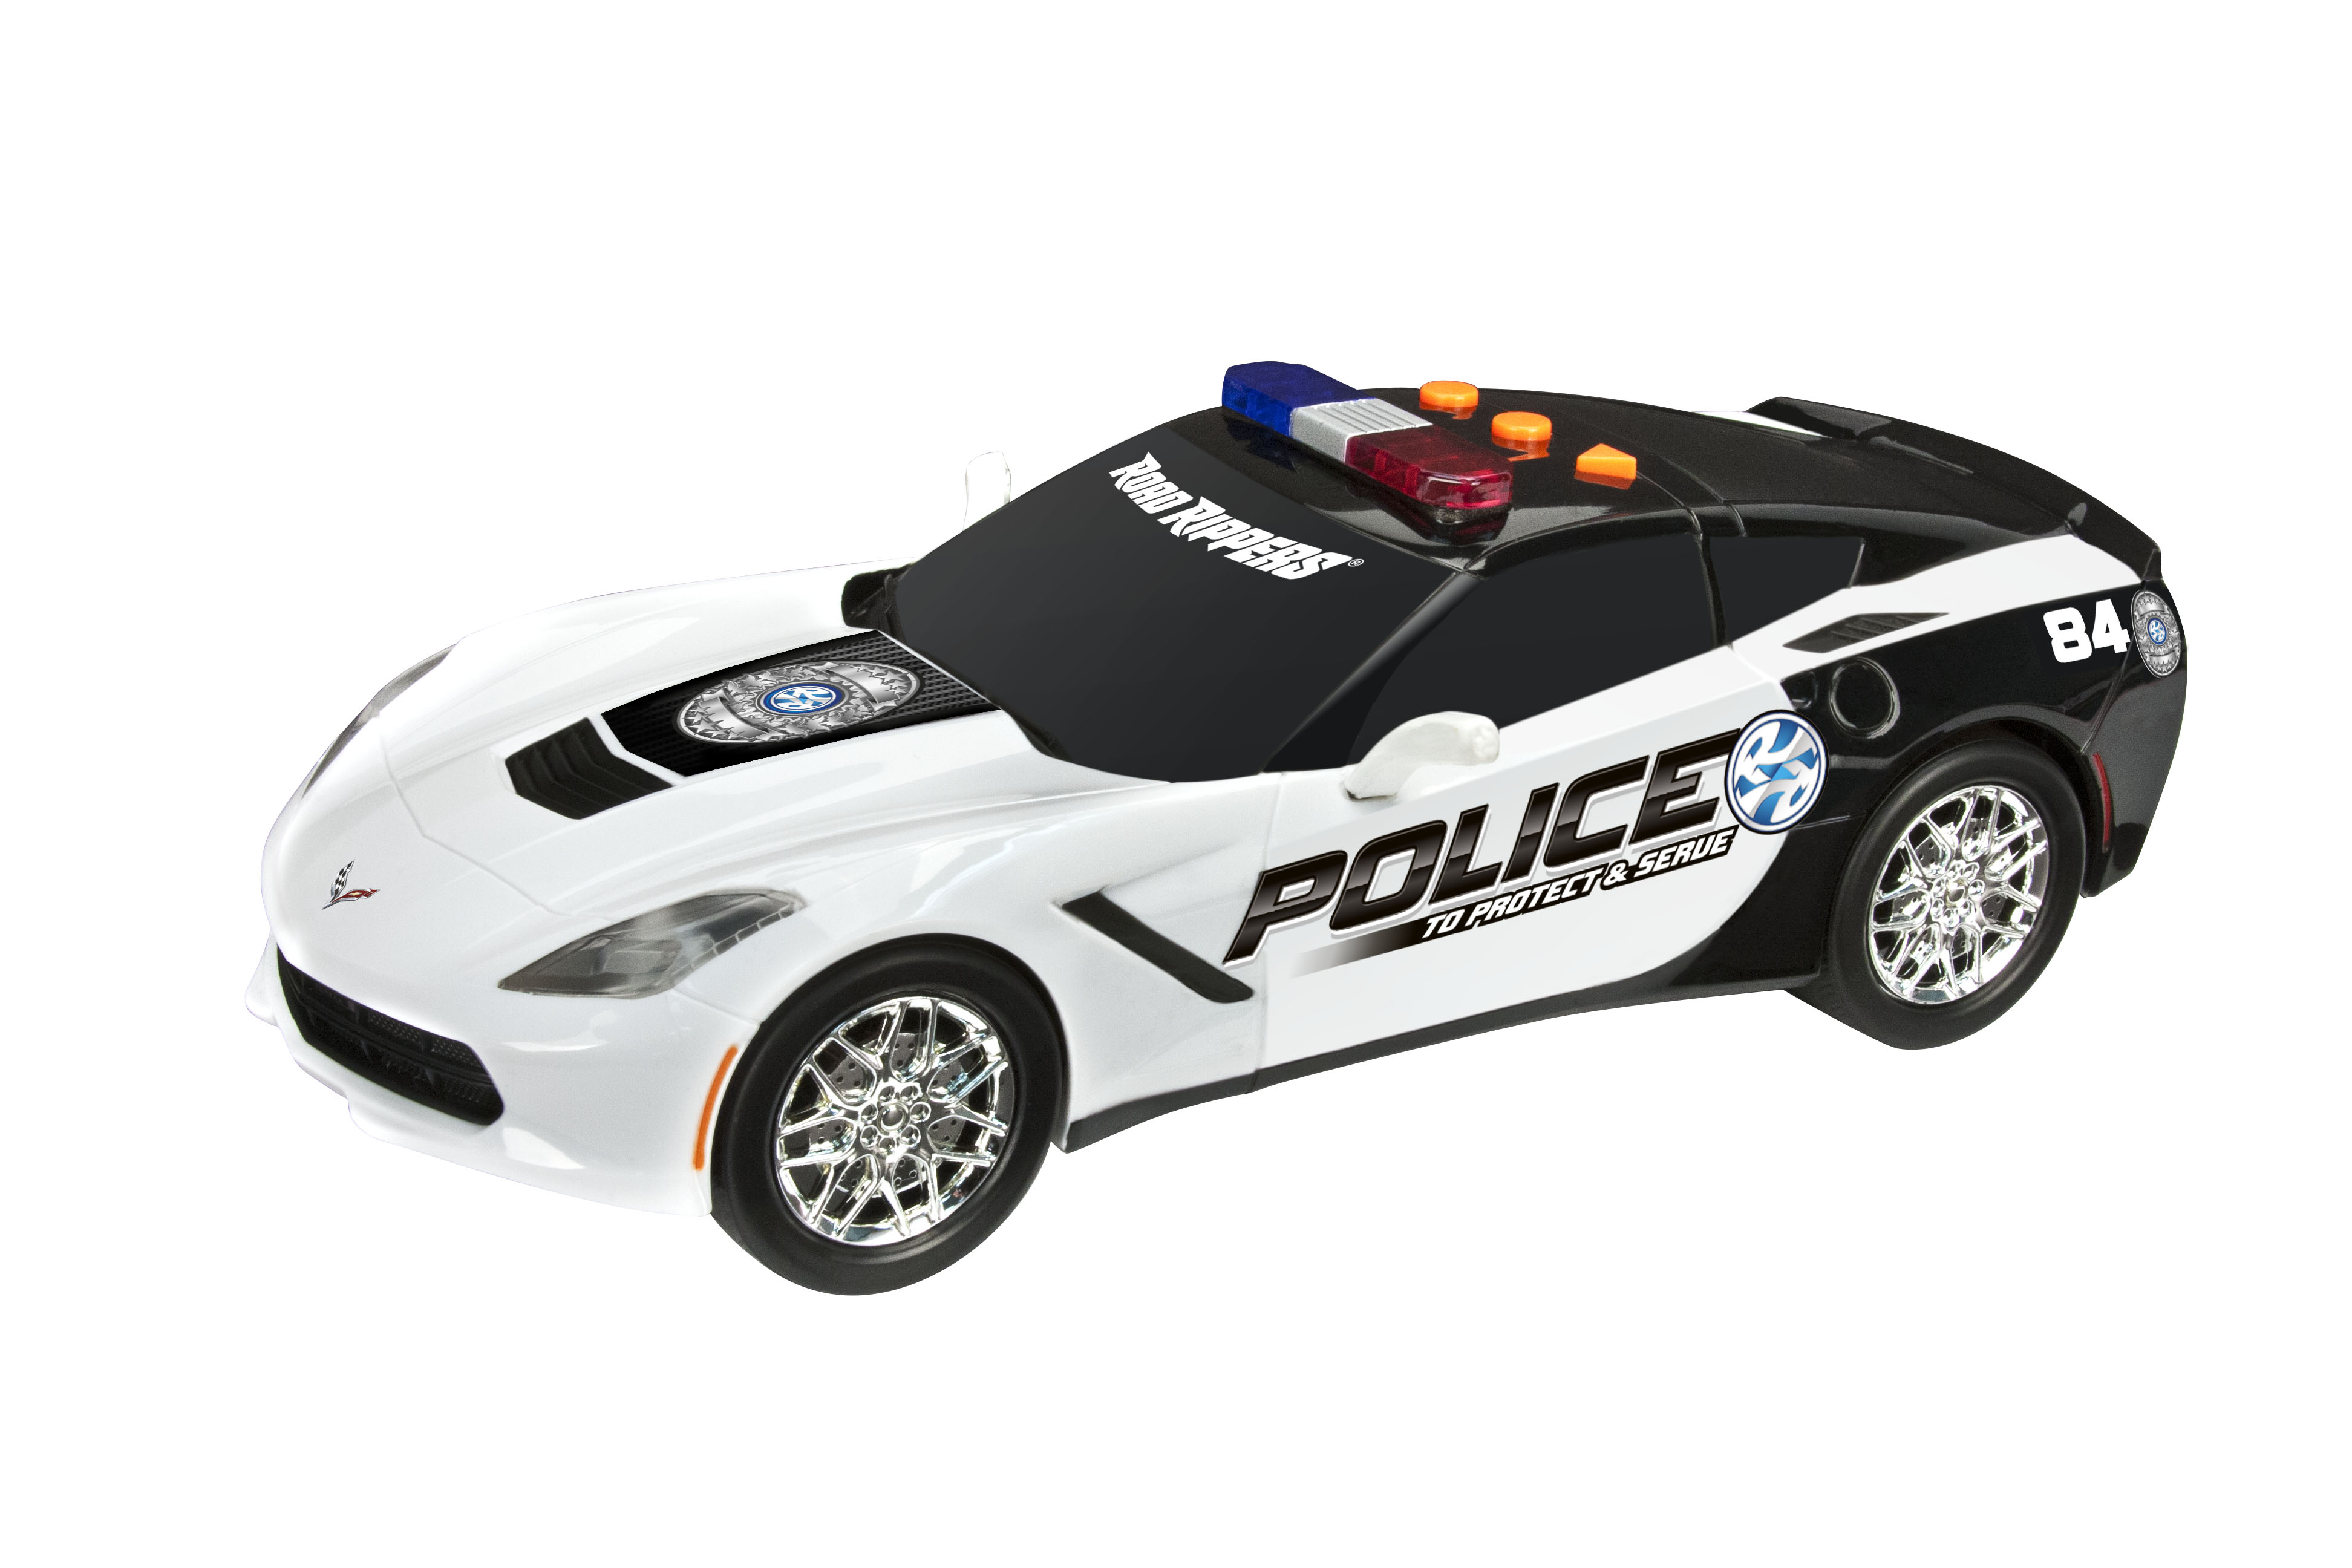 Road Rippers Protect and Serve Chevy Corvette C7 Police Car by Toy State International Limited